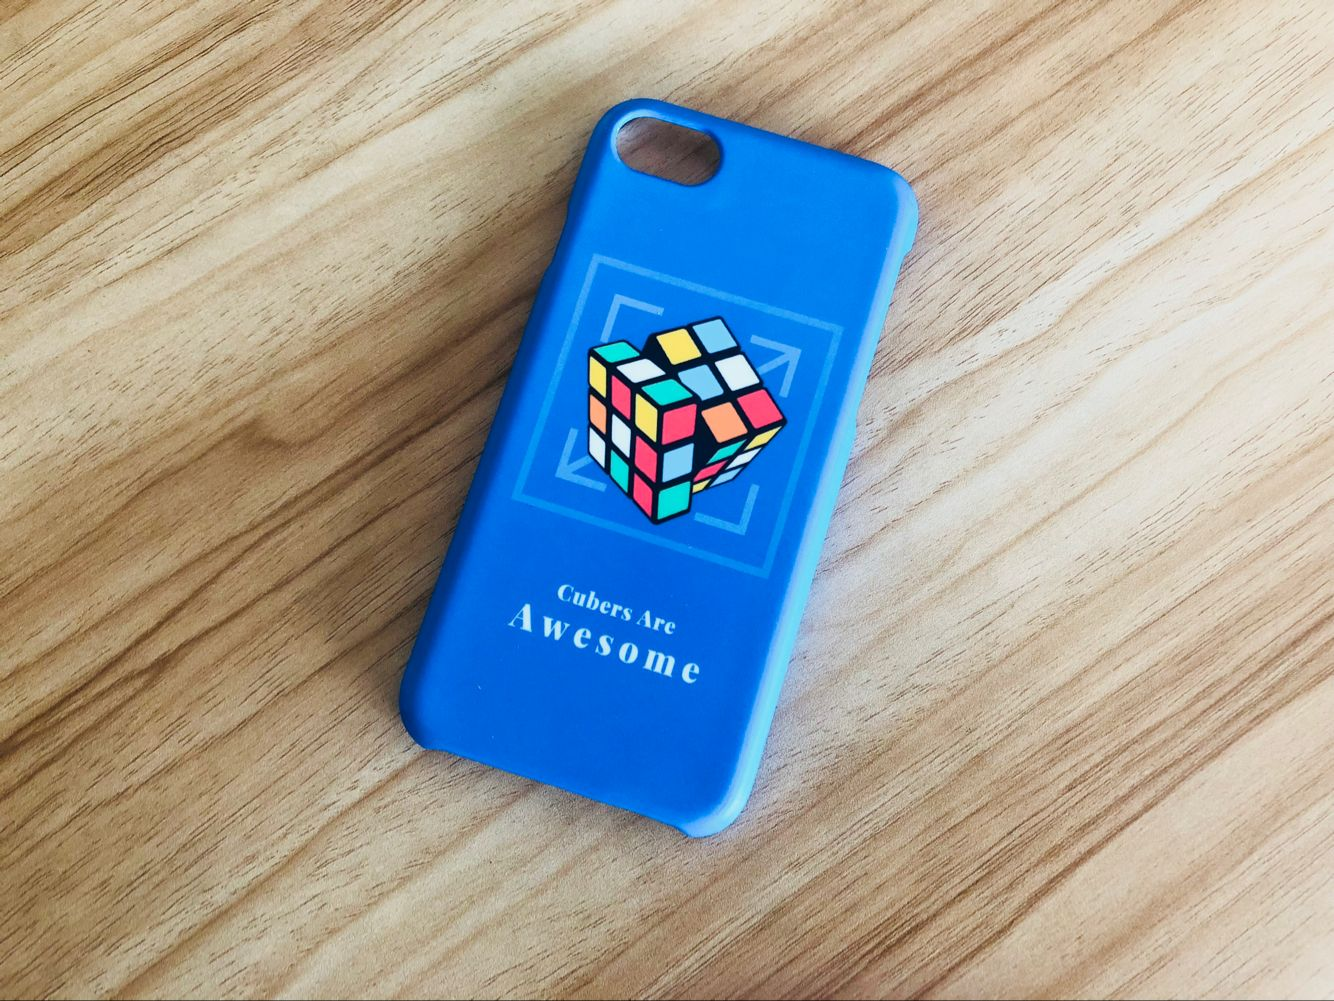 iPhone Case Unsolved 3x3